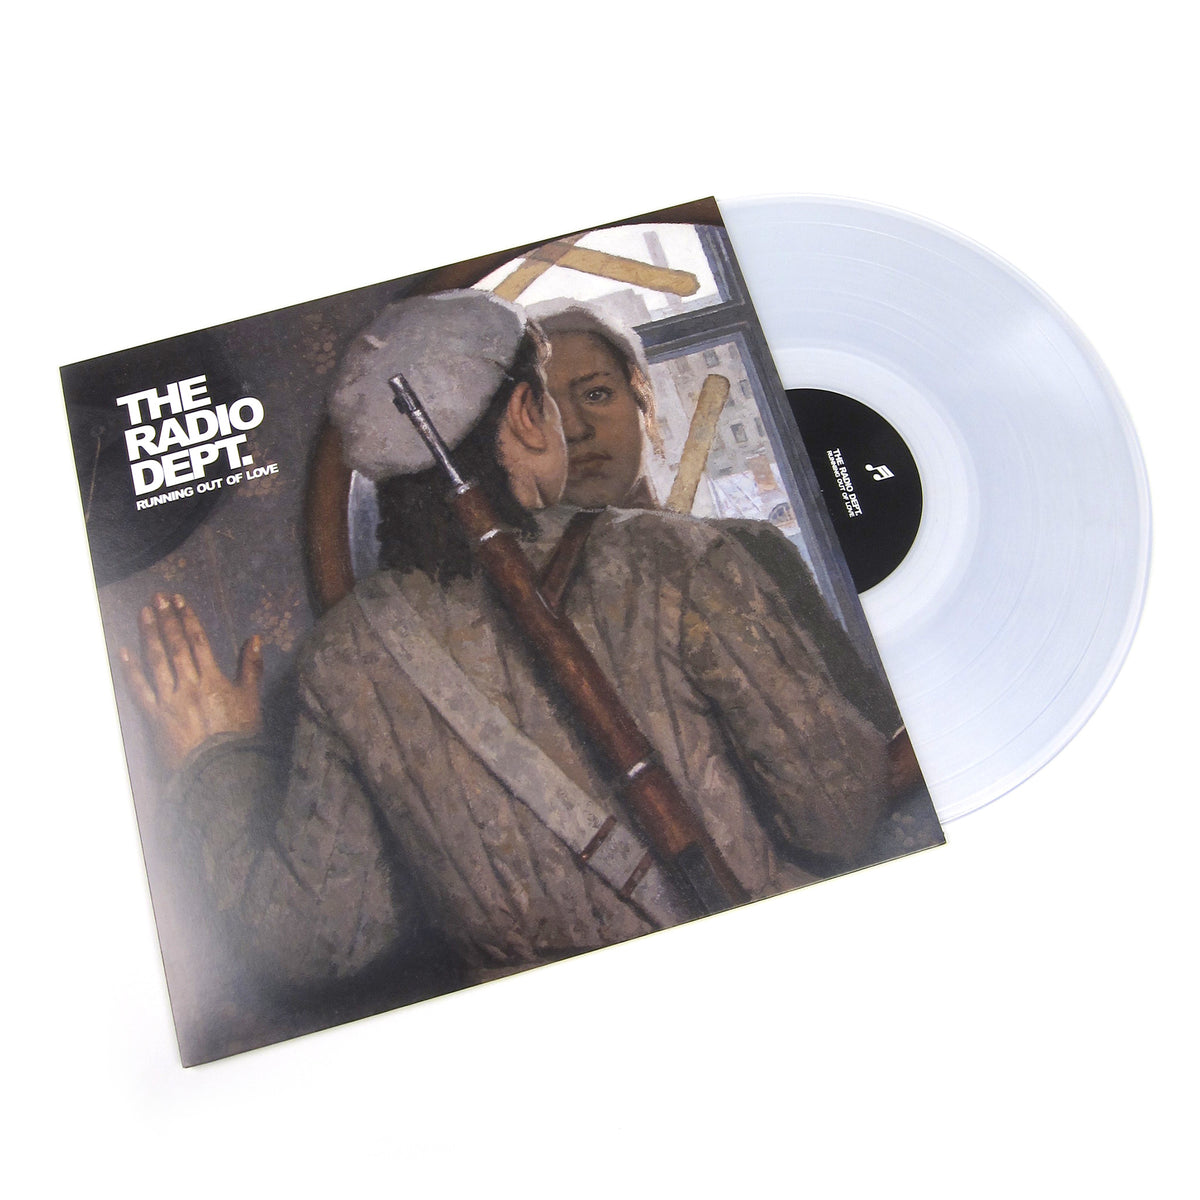 The Radio Dept.: Running Out Of Love (Colored Vinyl) Vinyl LP